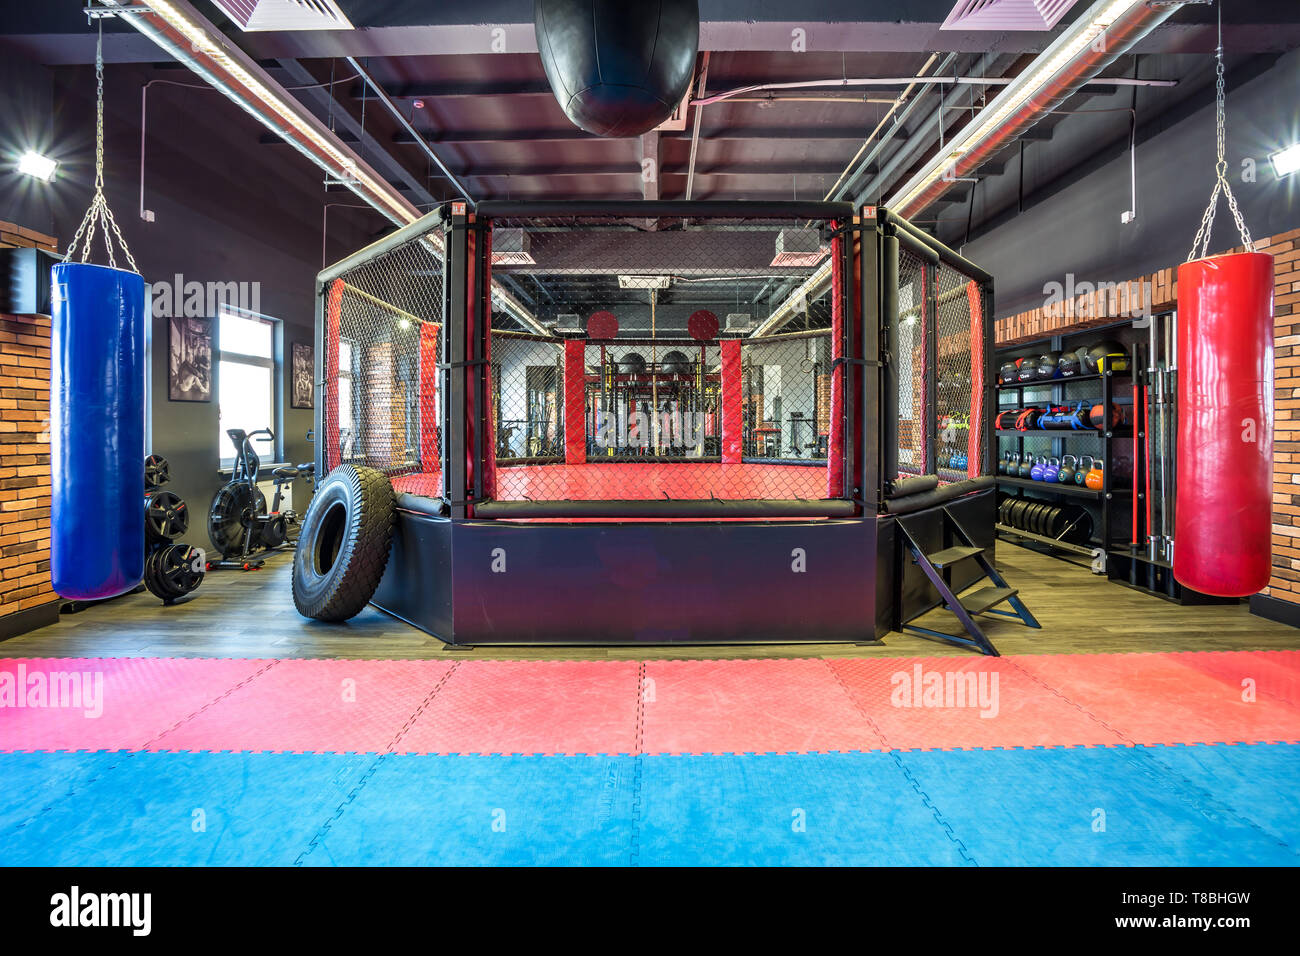 GRODNO, BELARUS - APRIL 2019: Hall of martial arts with fighting ring and punching bags in the modern Fight club - Stock Image